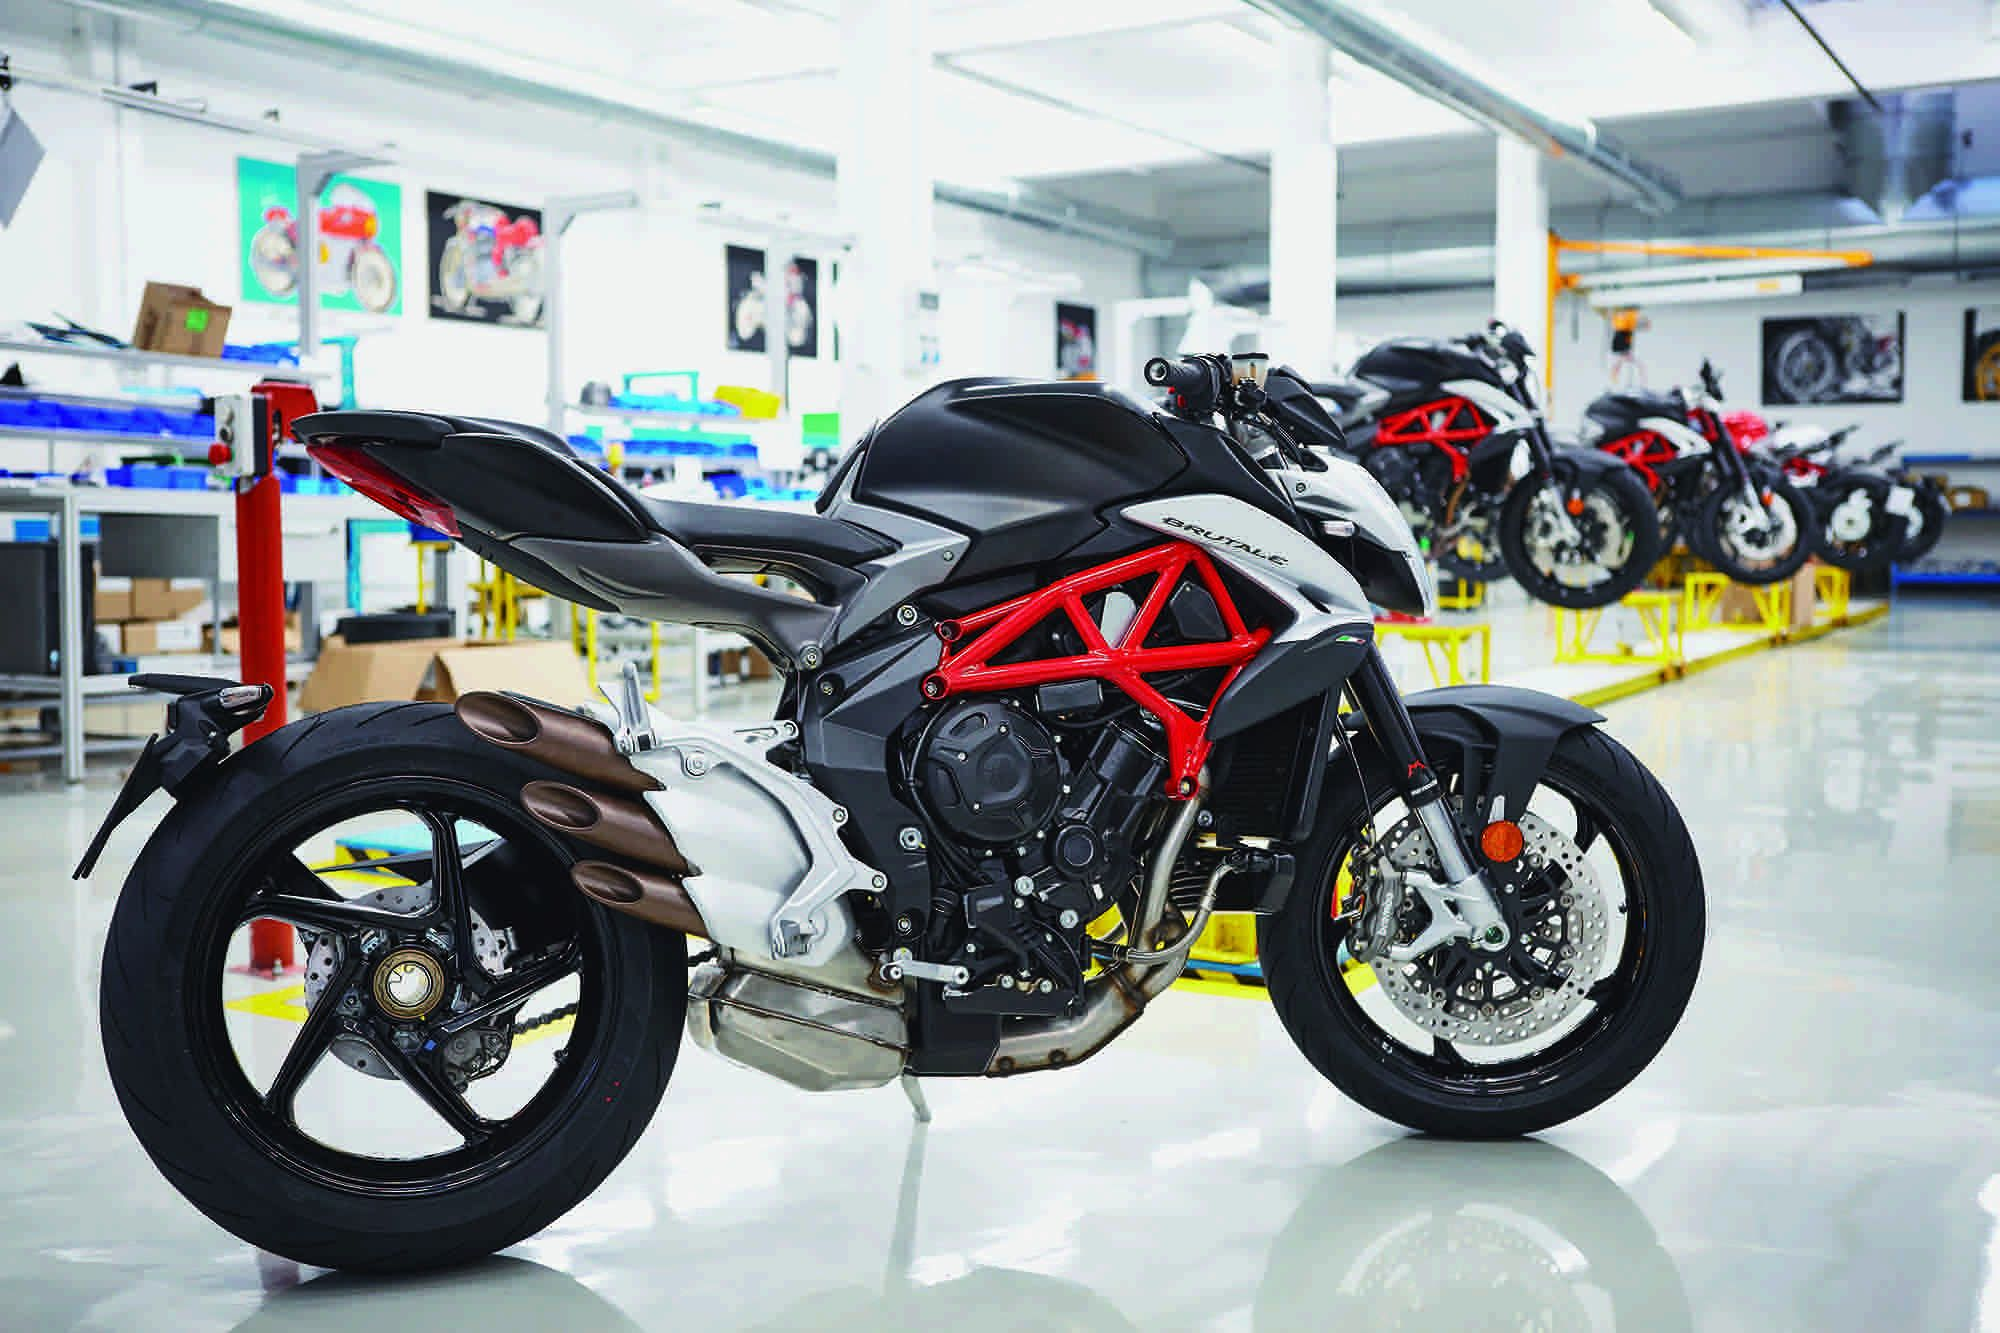 MV Agusta Brutale 800 Workshop